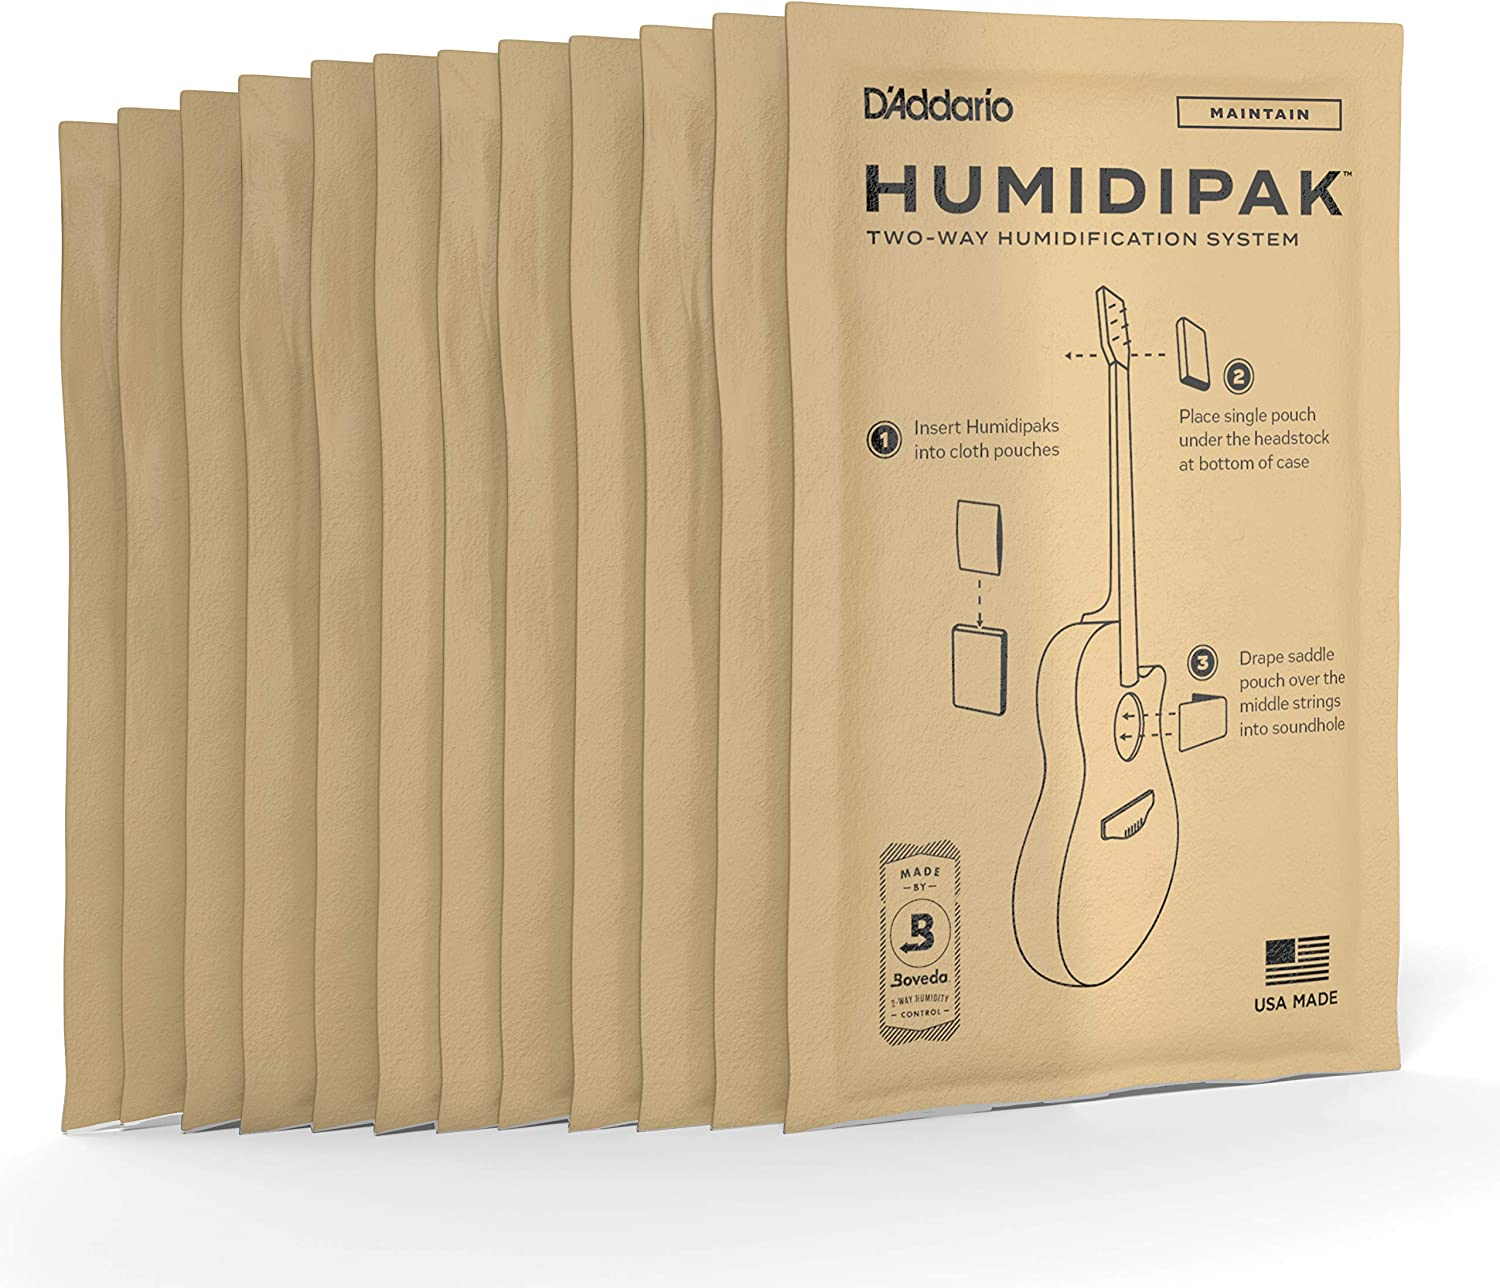 D'Addario Popular standard Two-Way Humidification Many popular brands 12 pack Replacement